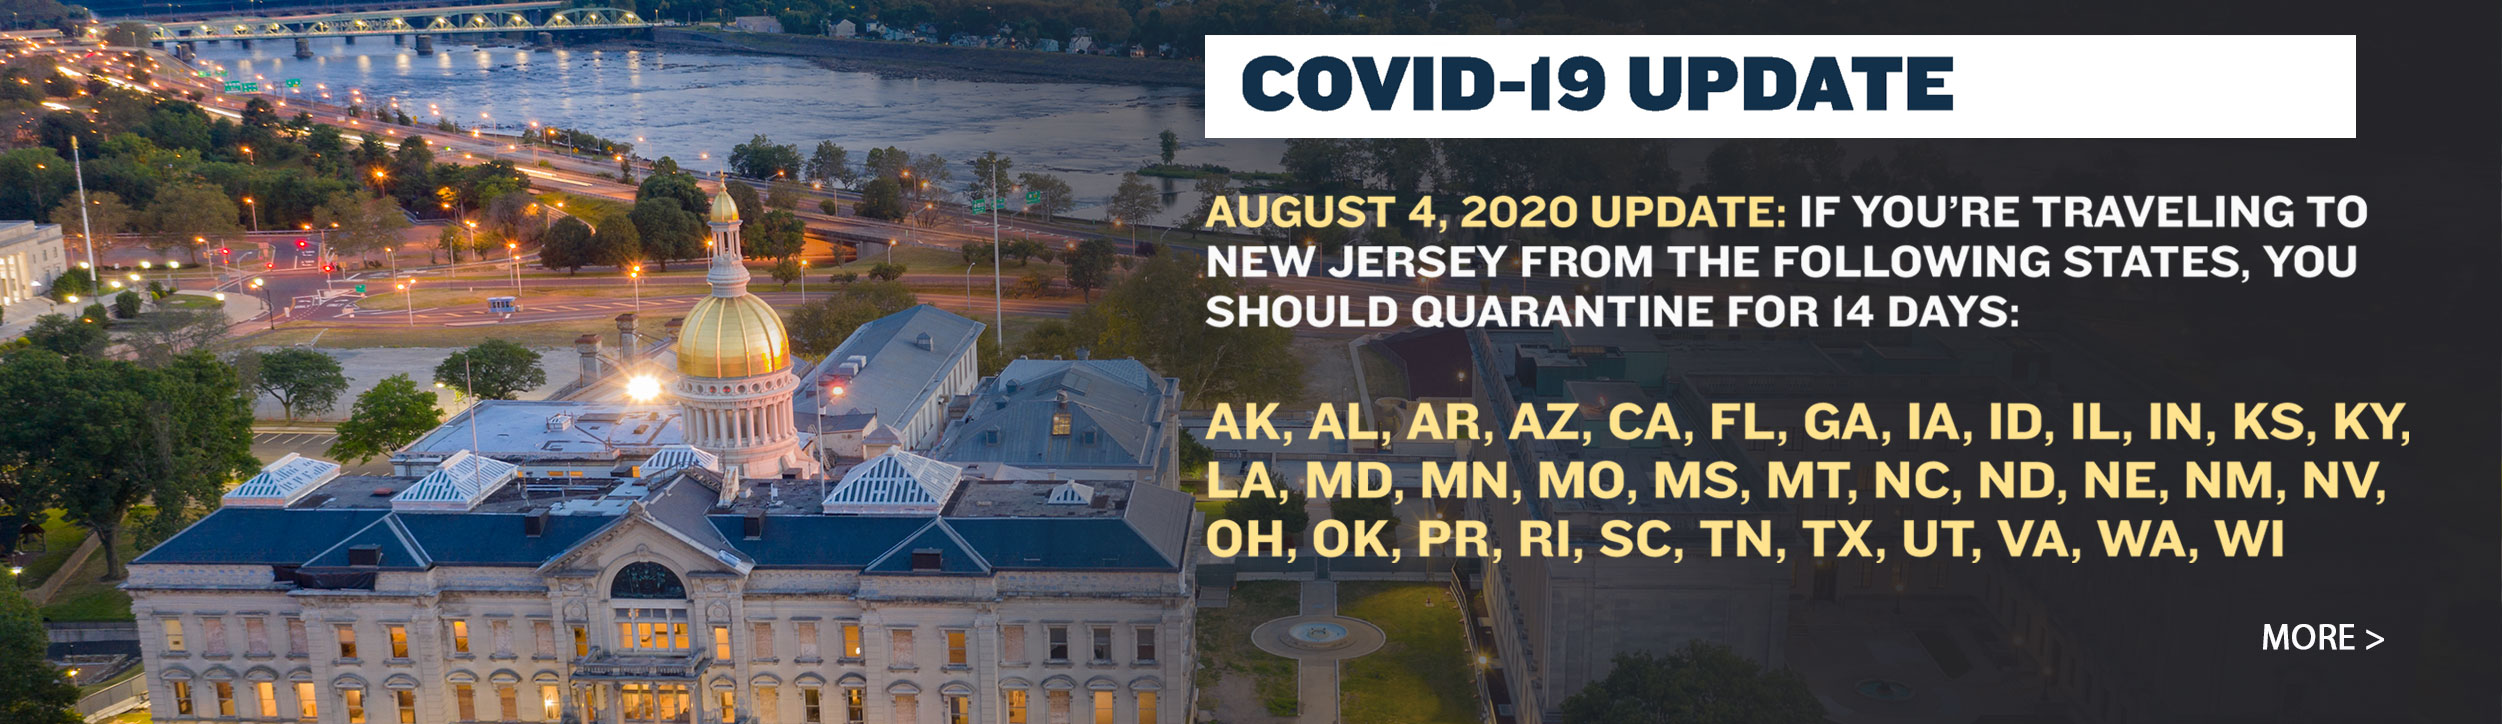 Updated Quarantine Advisory Issued for Individuals Traveling to New Jersey from Rhode Island, Bringing New Total to 35 States and Territories